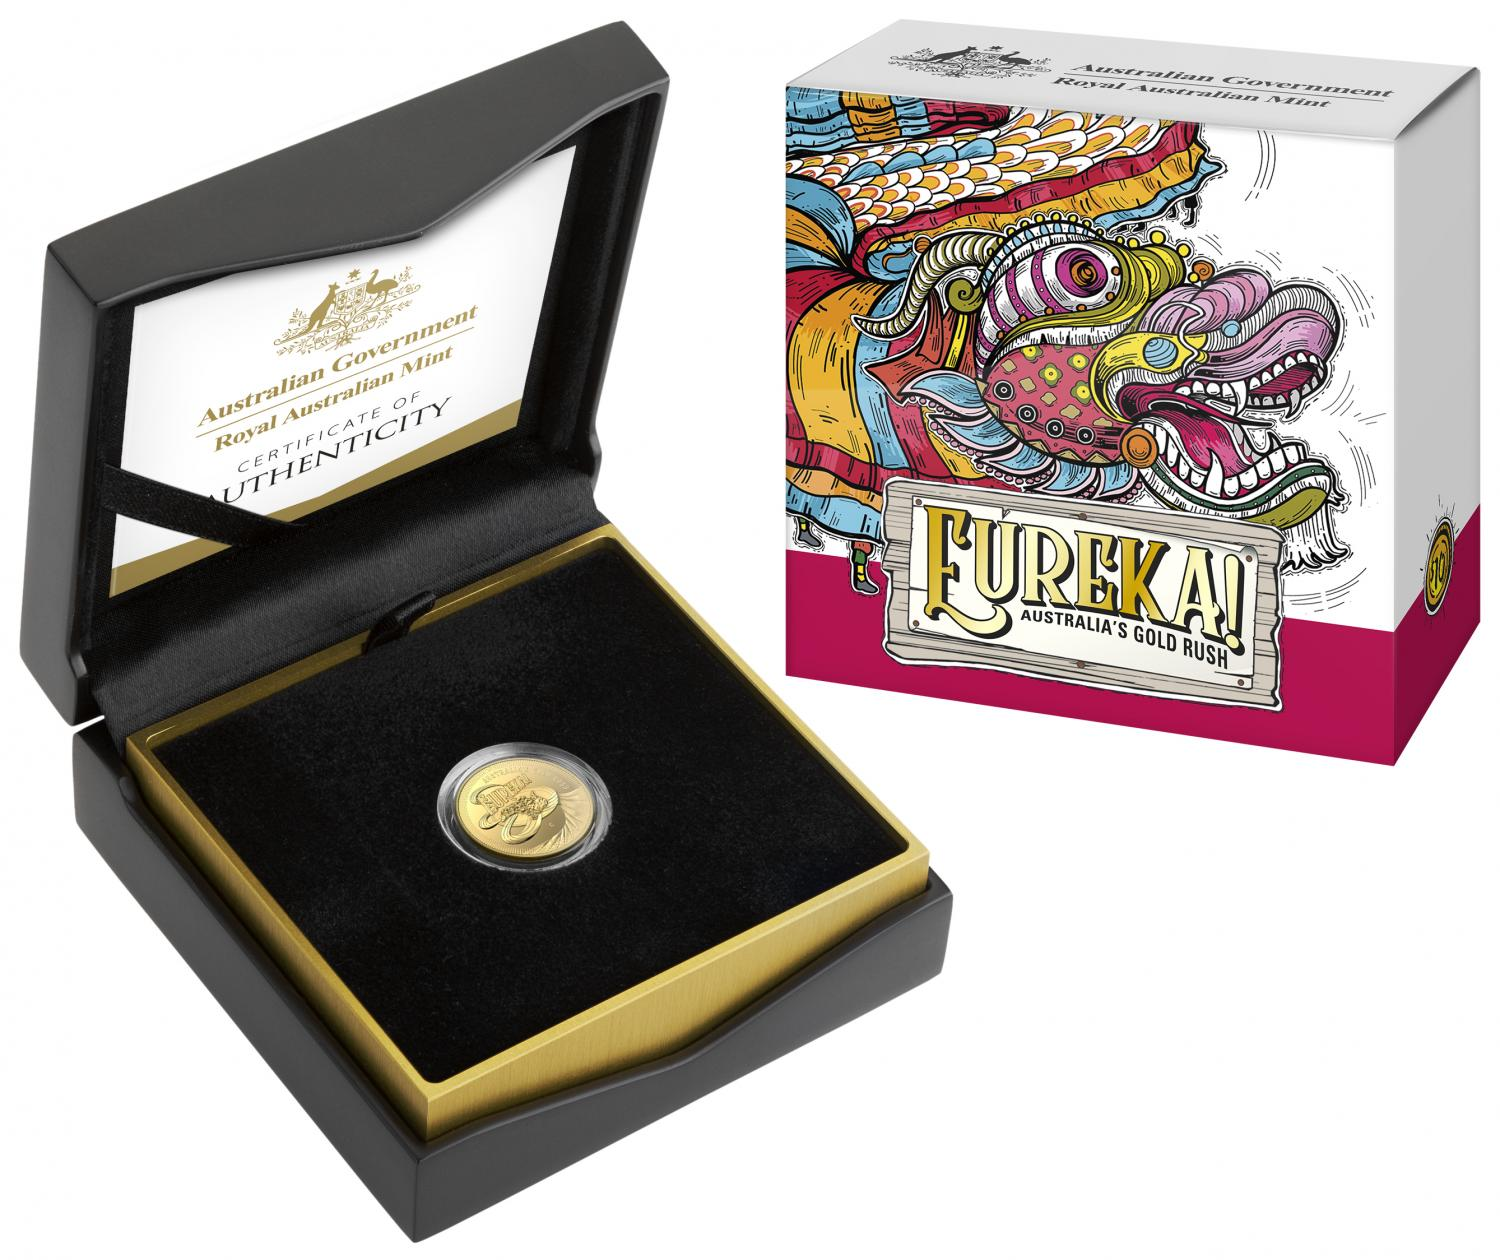 Thumbnail for 2020 Eureka $10.00 One Tenth oz Gold Proof Coin